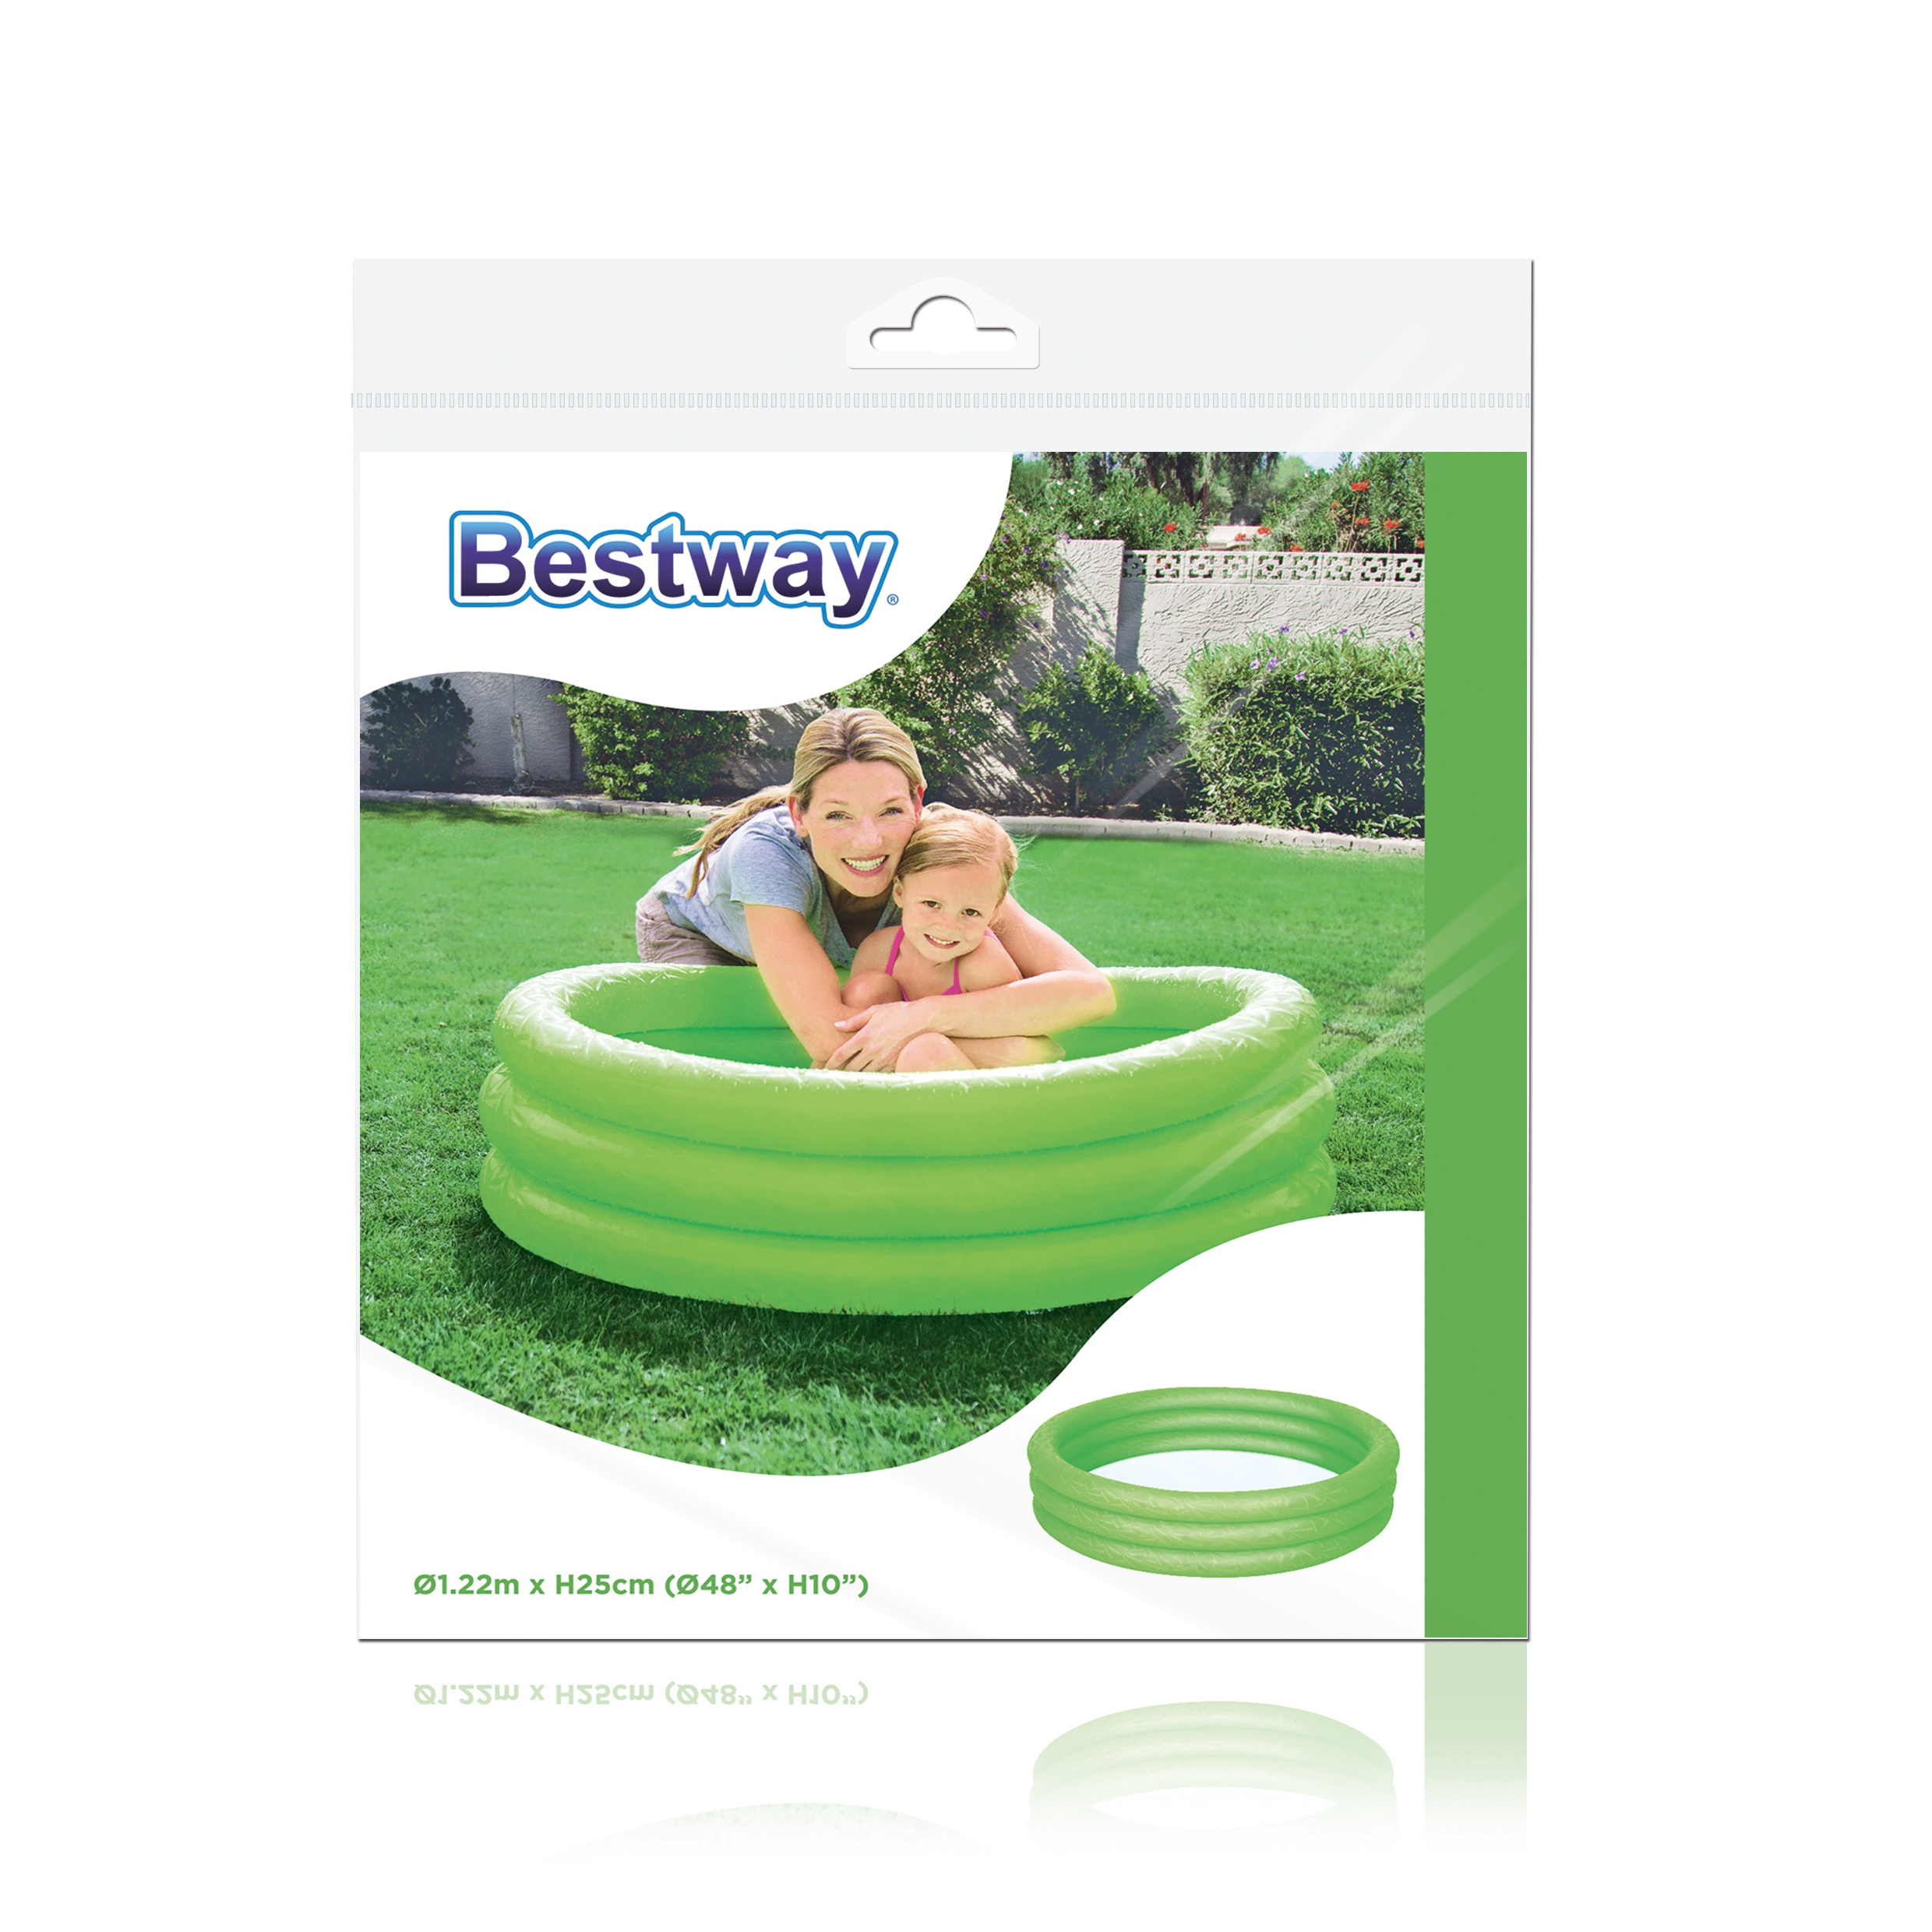 Bestway large inflatable water swimming paddling pool for Garden paddling pools